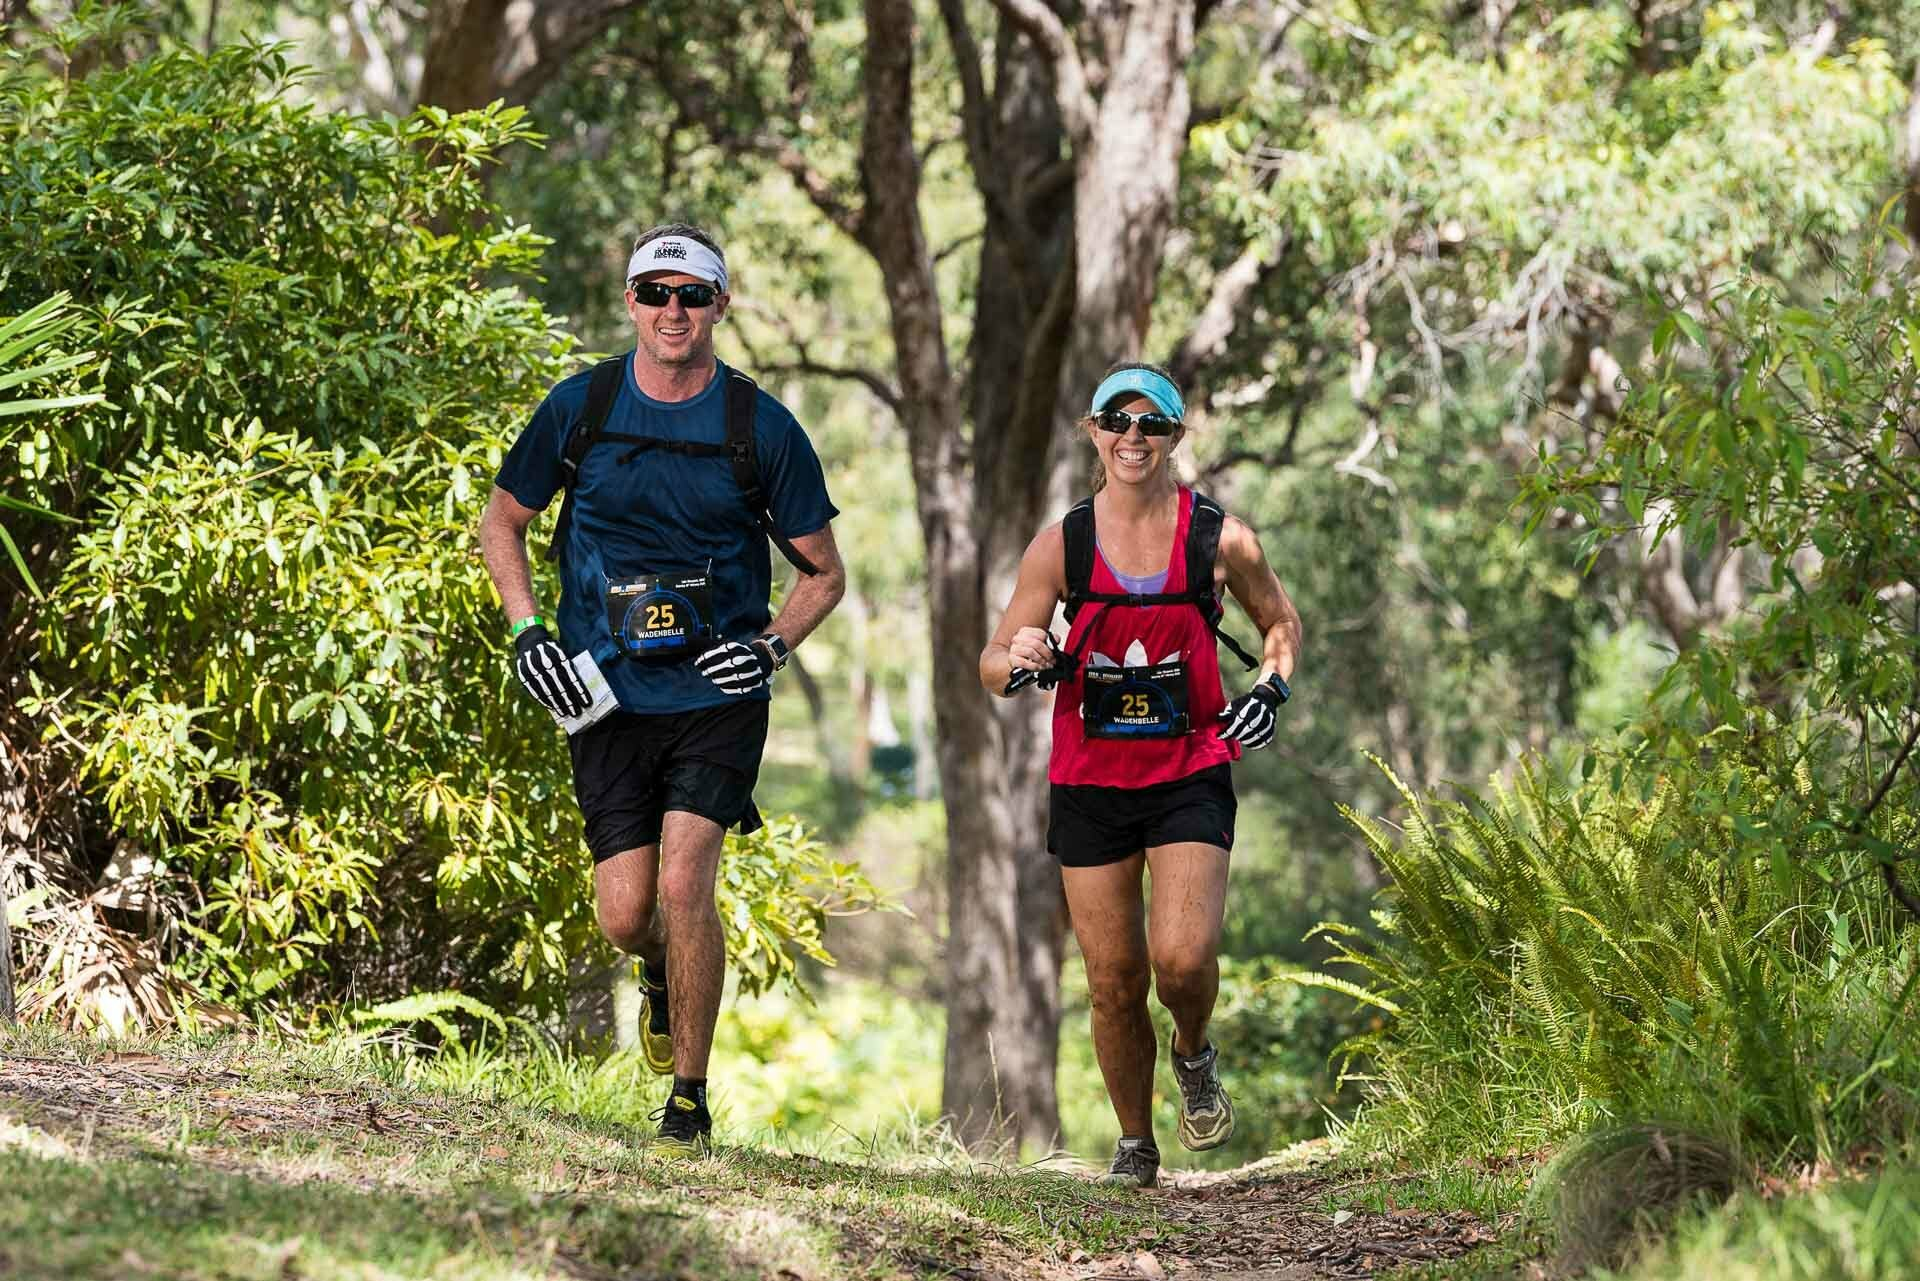 Enter the Lake Mac Adventure Race and Start 2021 Right, outer image collective, trail running